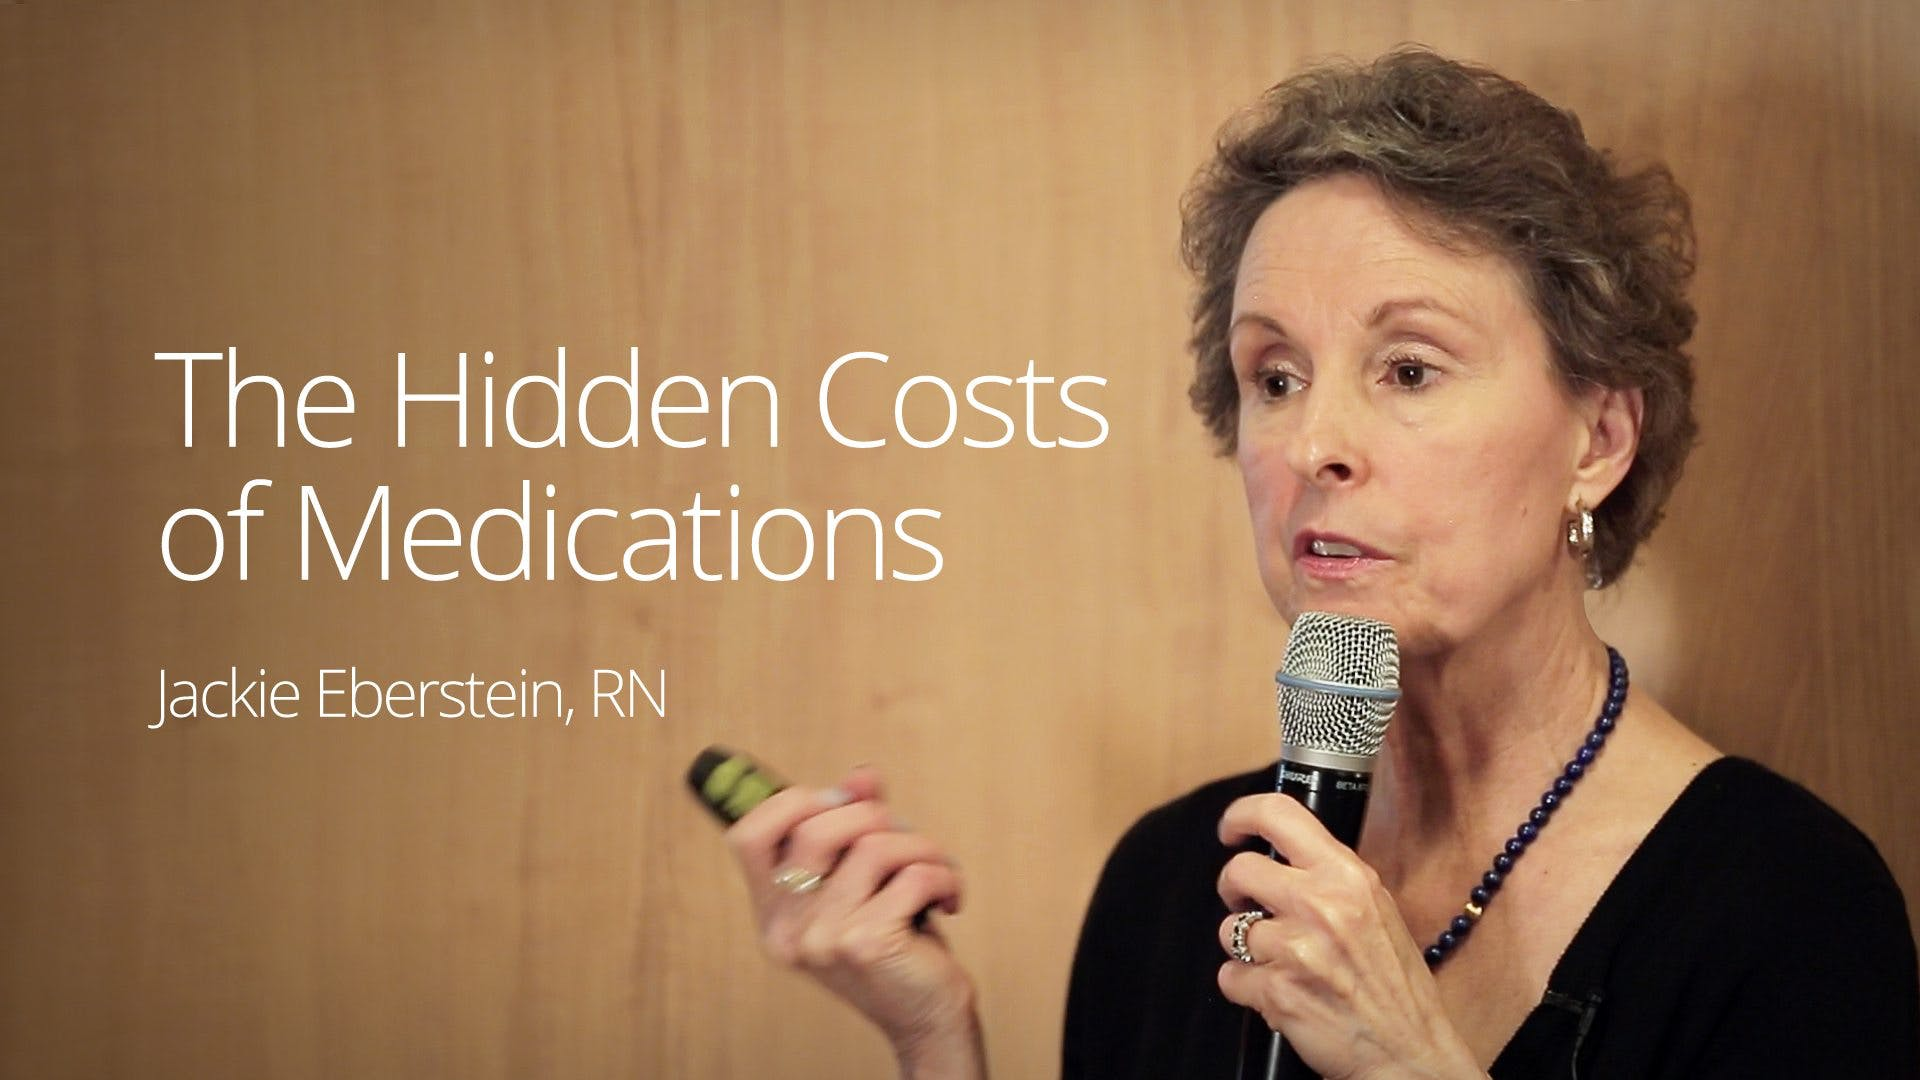 The Hidden Costs of Medications – Jackie Eberstein